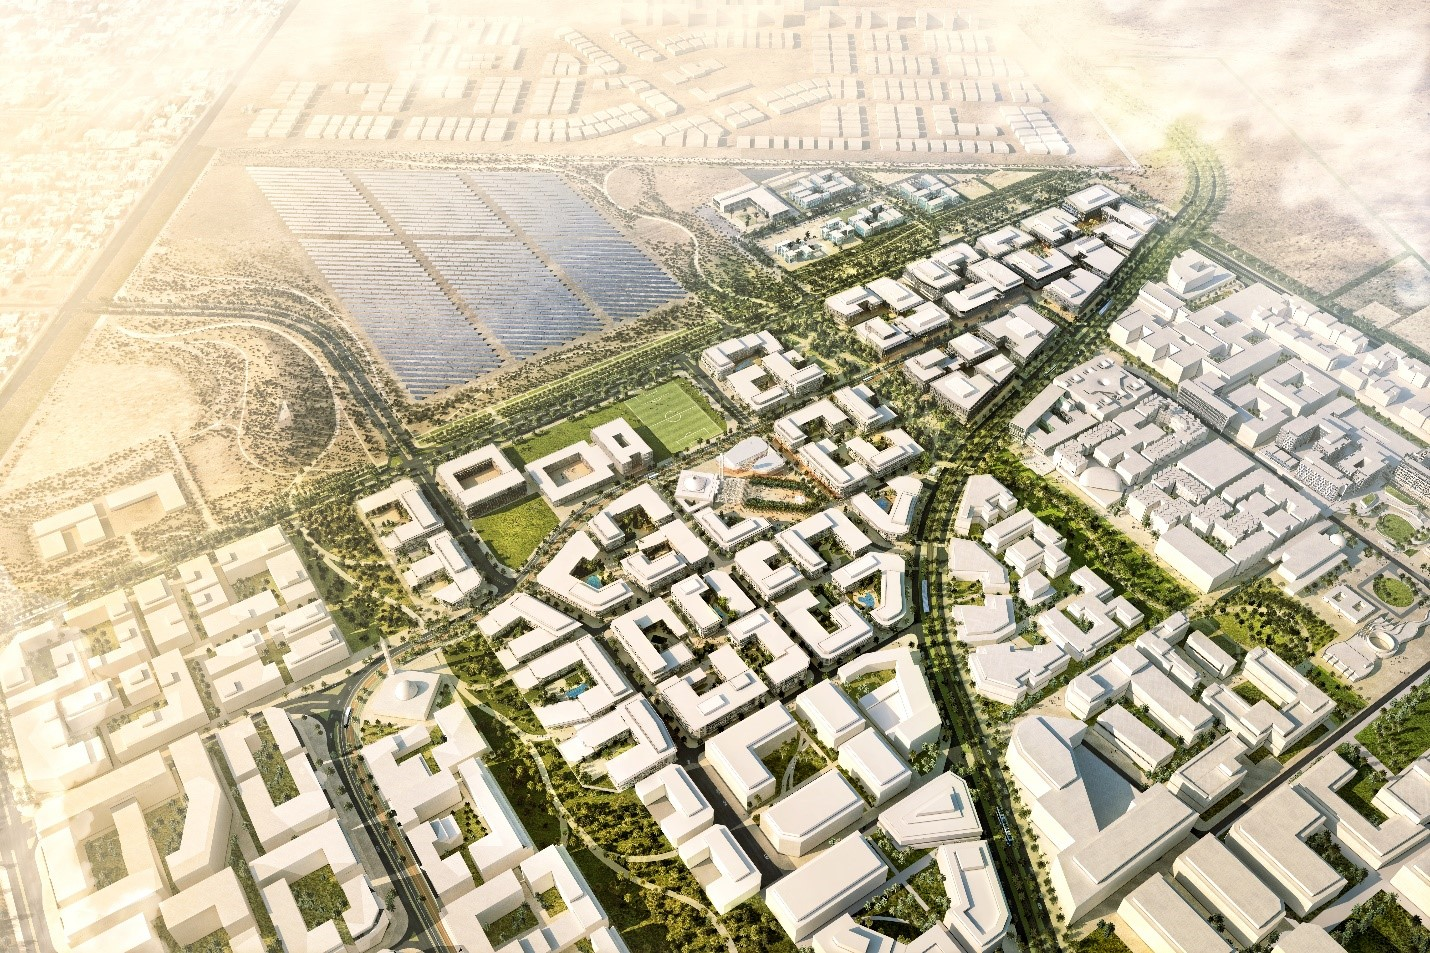 Masdar City Enters Exciting Phase 2 Planetsave